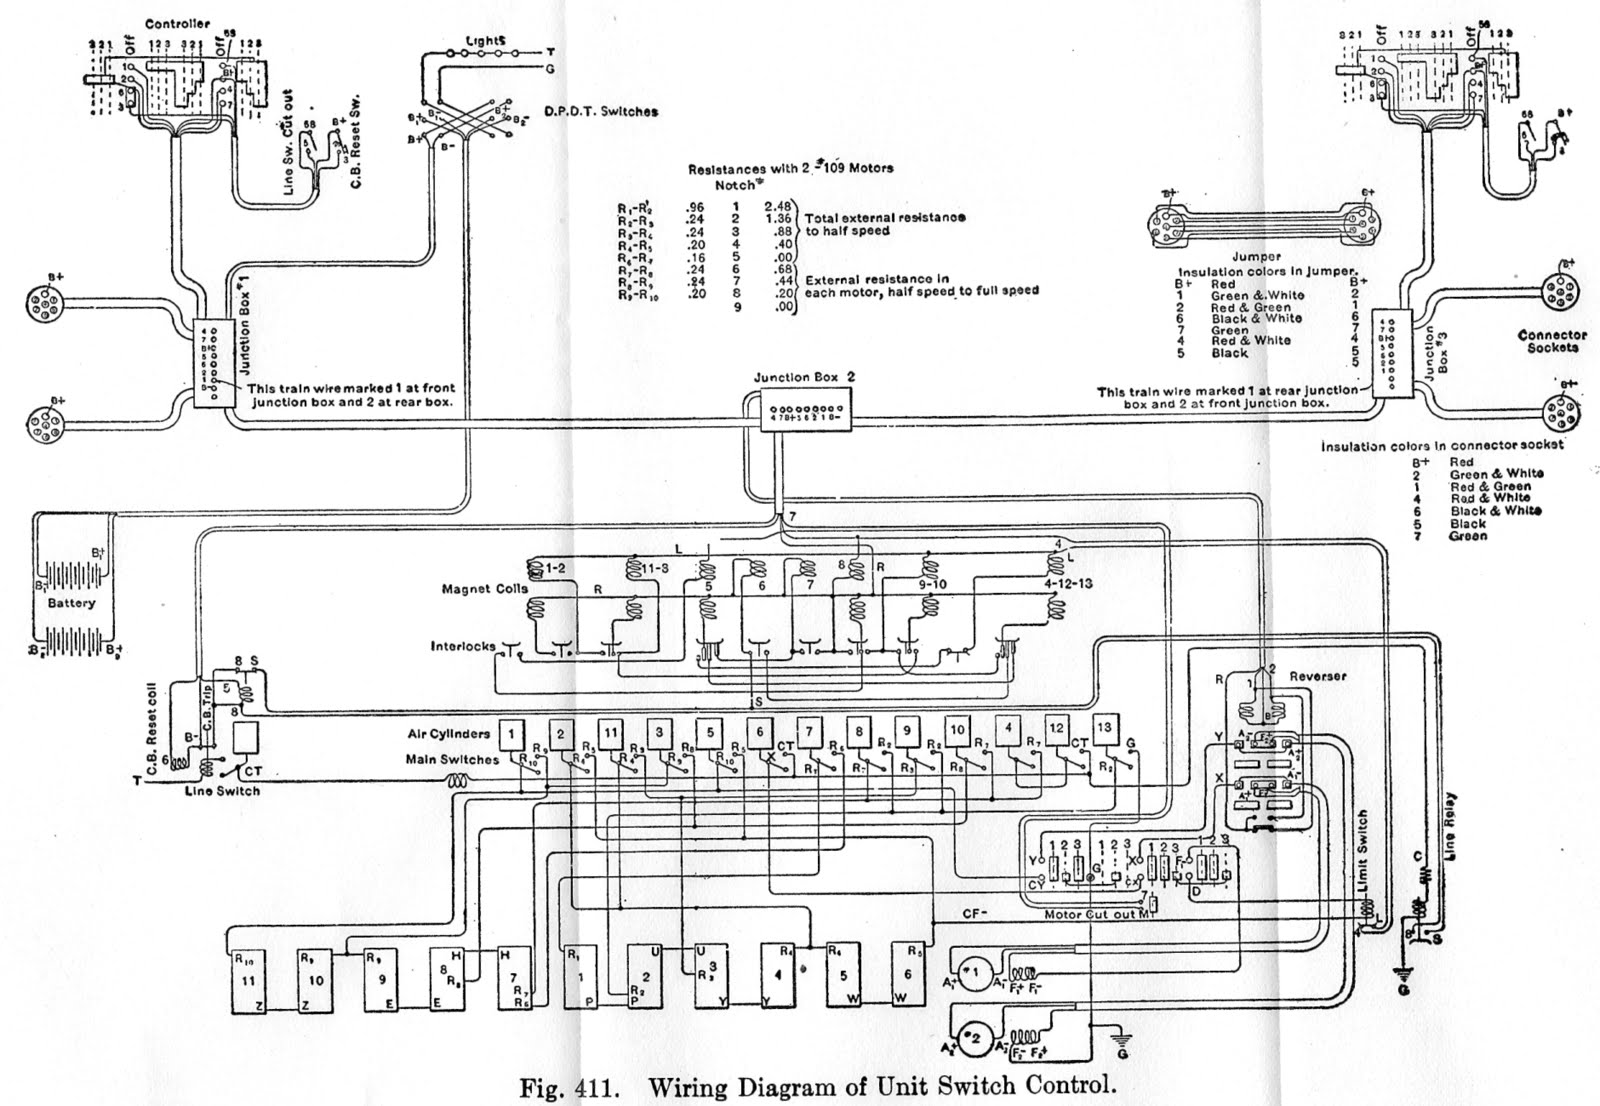 Westinghouse Motor Wiring Diagram Best Secret Likewise 3 Phase Control On Starter 41 Teco